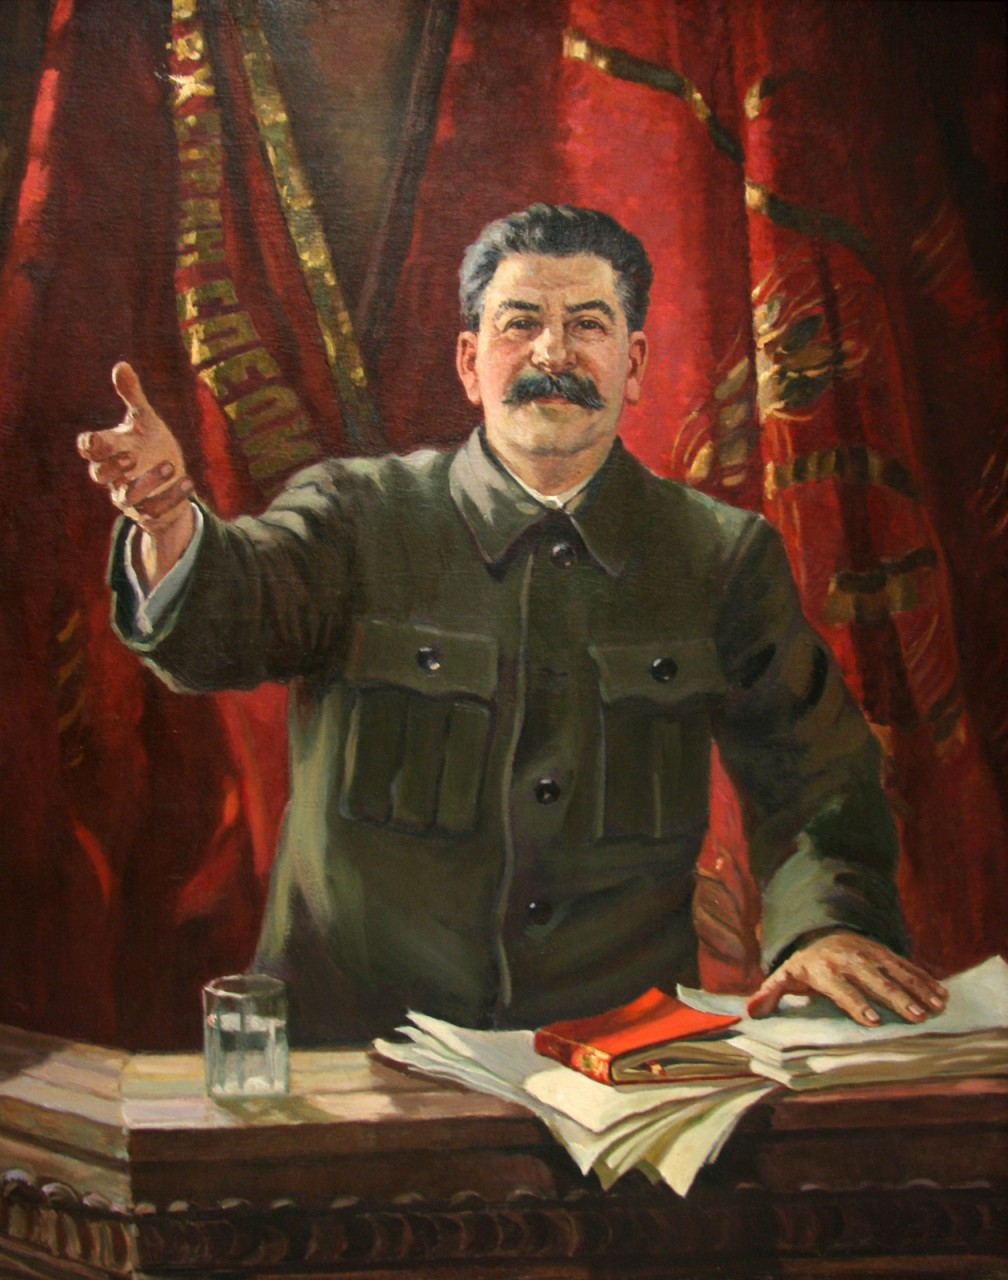 stalin s postion in the party bureaucracy Describing stalin as violent, capricious and despotic, he cited lenin's suppressed 1922 testament asking for the removal of stalin from his position as general secretary of the party stalin's bureaucracy rose on the disintegration of the working class, and therefore of the soviet (council.